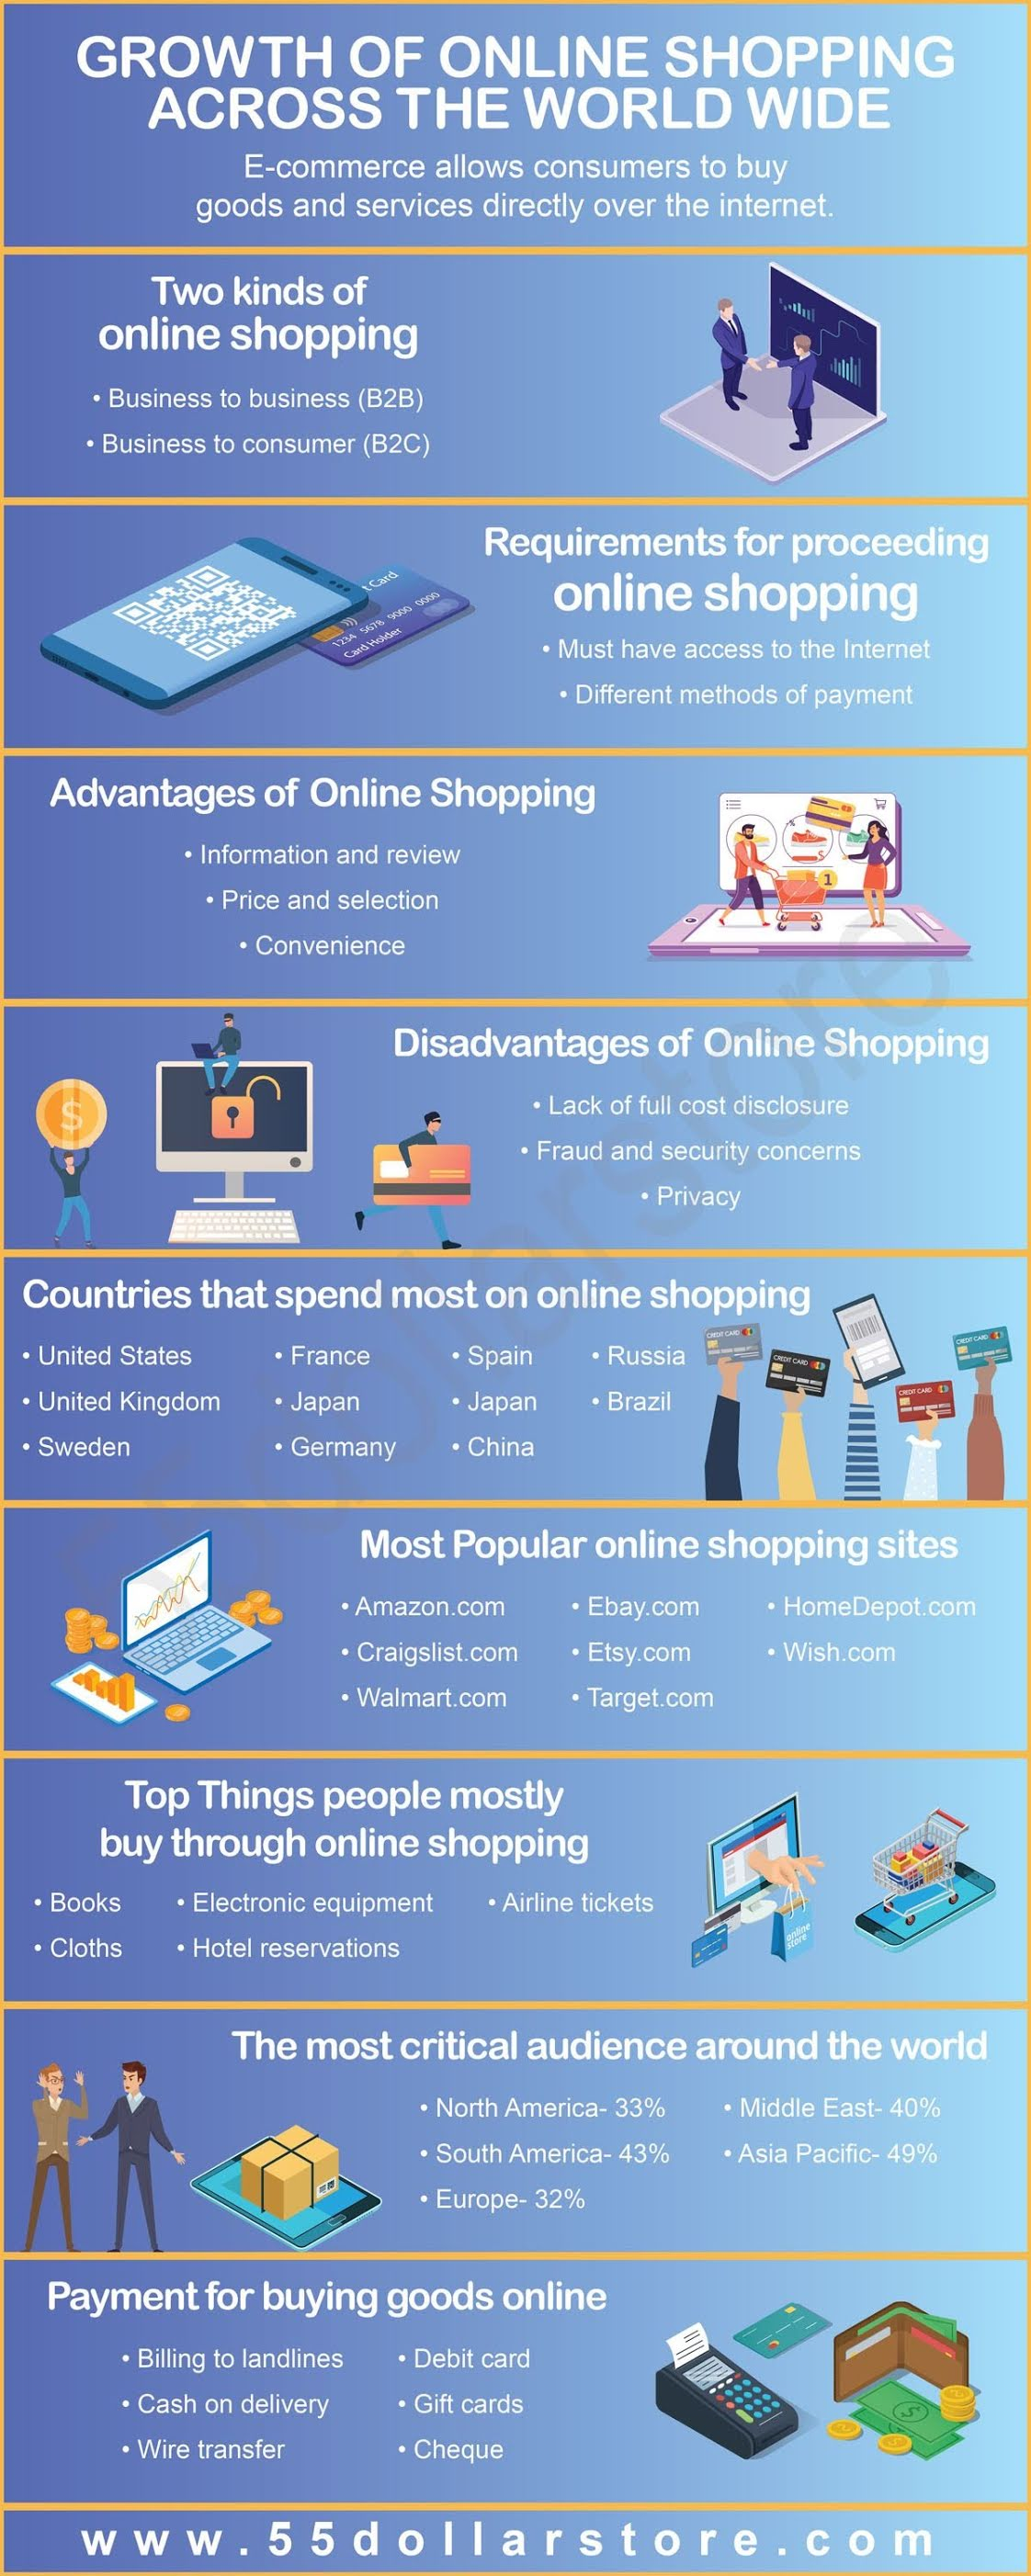 Growth of online shopping across the world wide #infographic